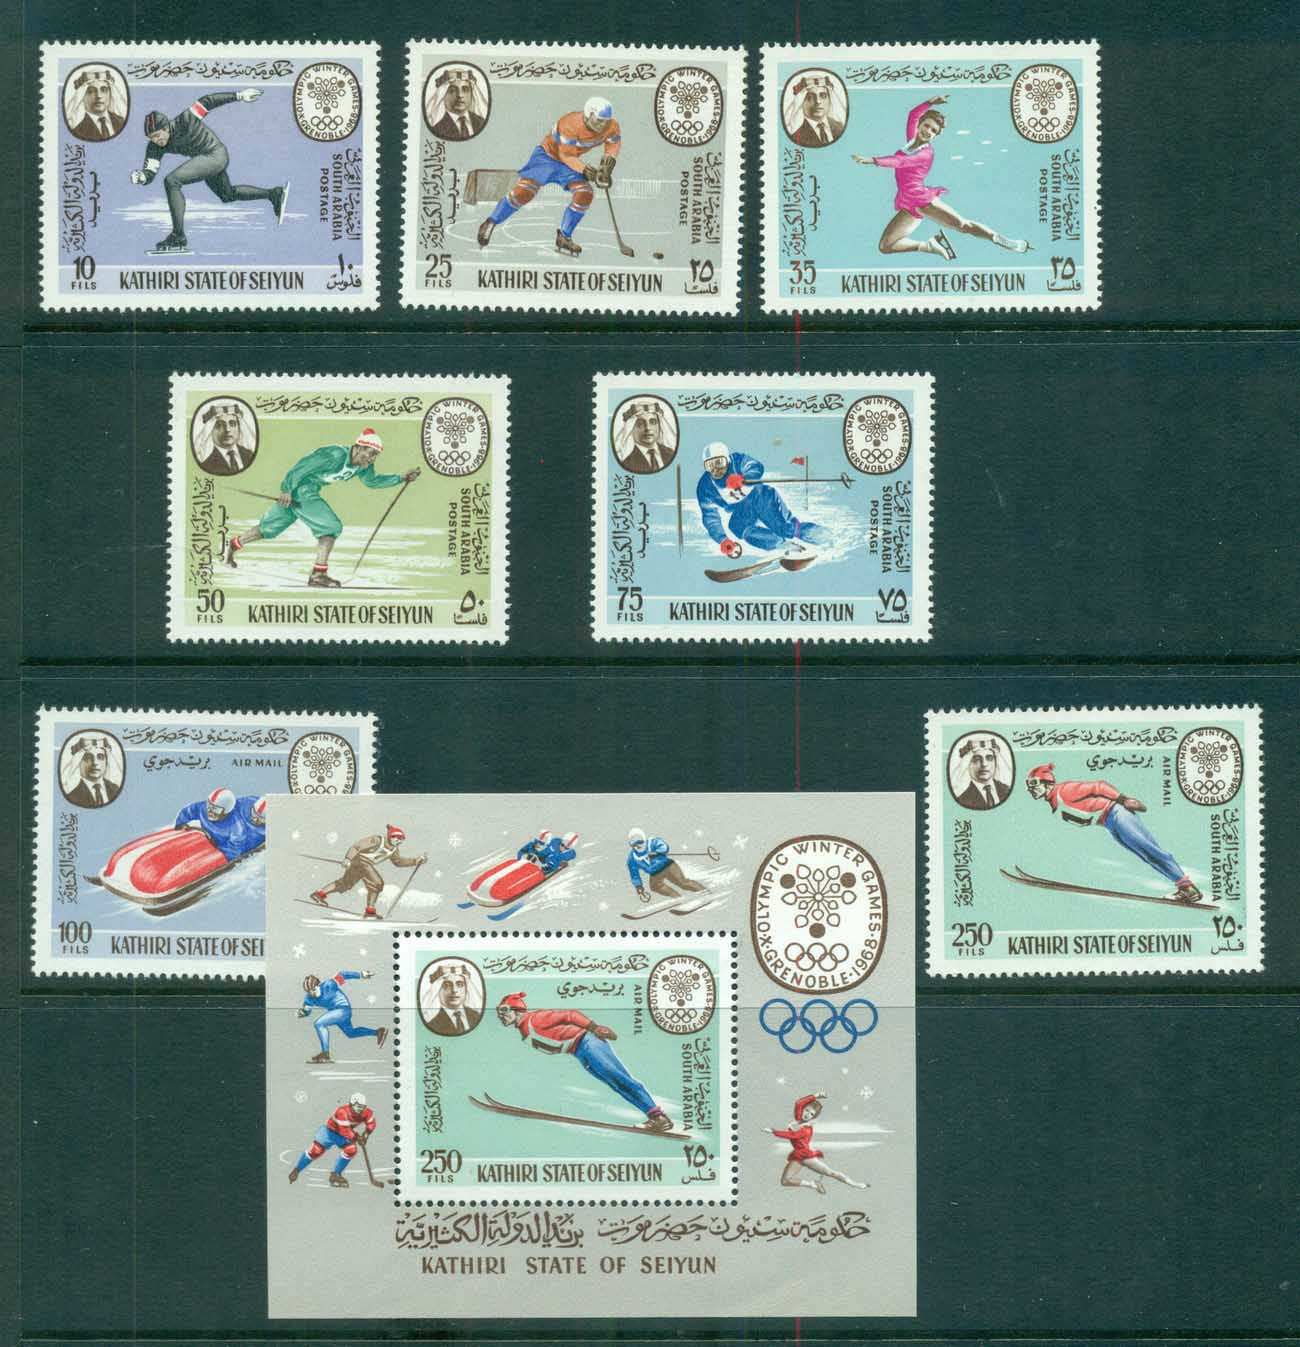 Aden Kathiri State of Seiyun 1967 Winter Olympics Grenoble + MS MUH lot71483